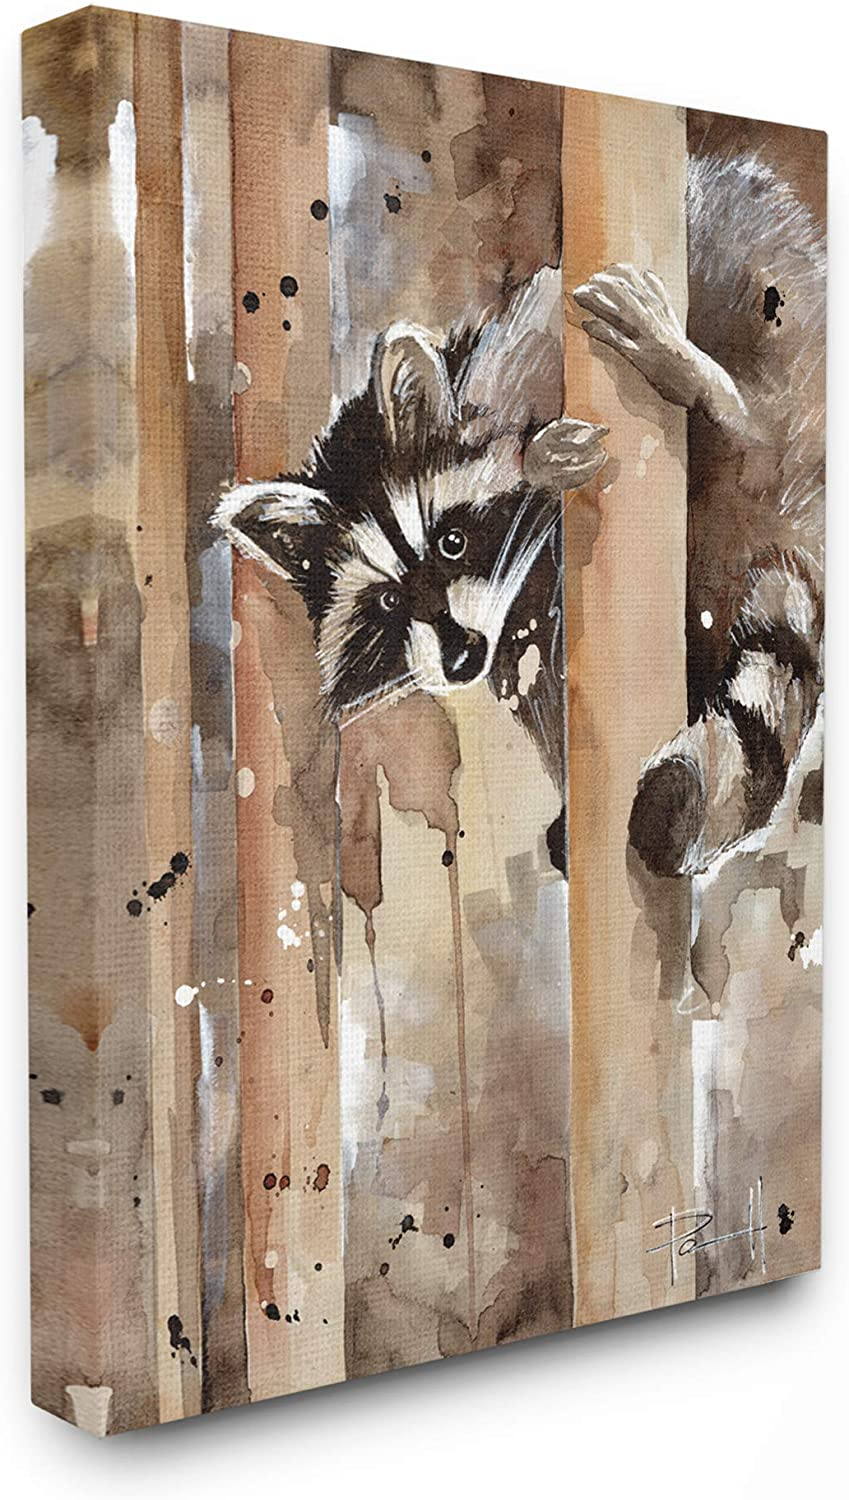 Stupell Industries Raccoon in The Forest Watercolor Animal Painting Canvas Wall Art, 16 x 20, Design by Artist Sean Parnell